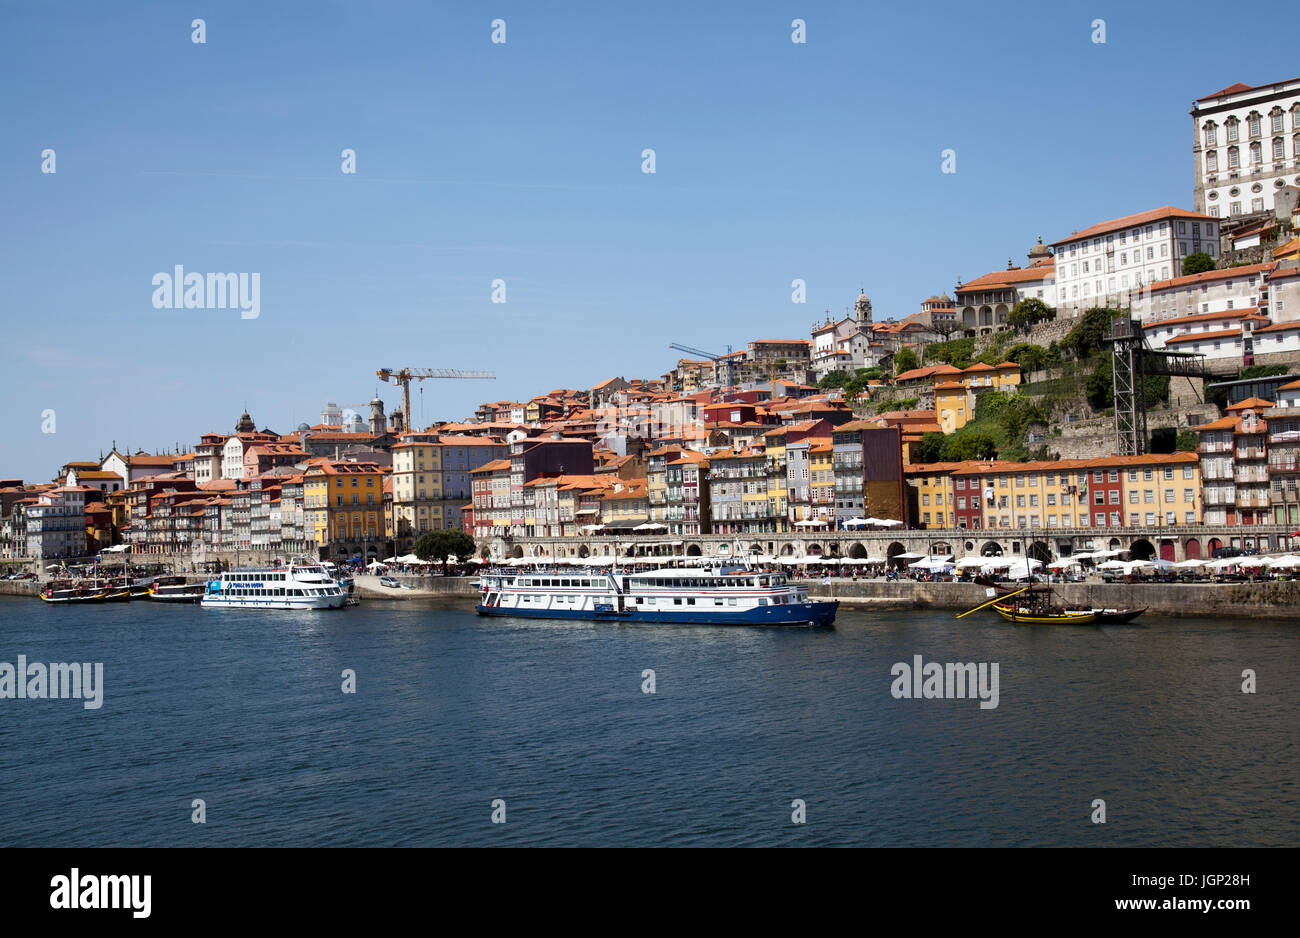 View of Porto Buildings on Ribeira Side along River Douro - Porto - Portugal - Stock Image